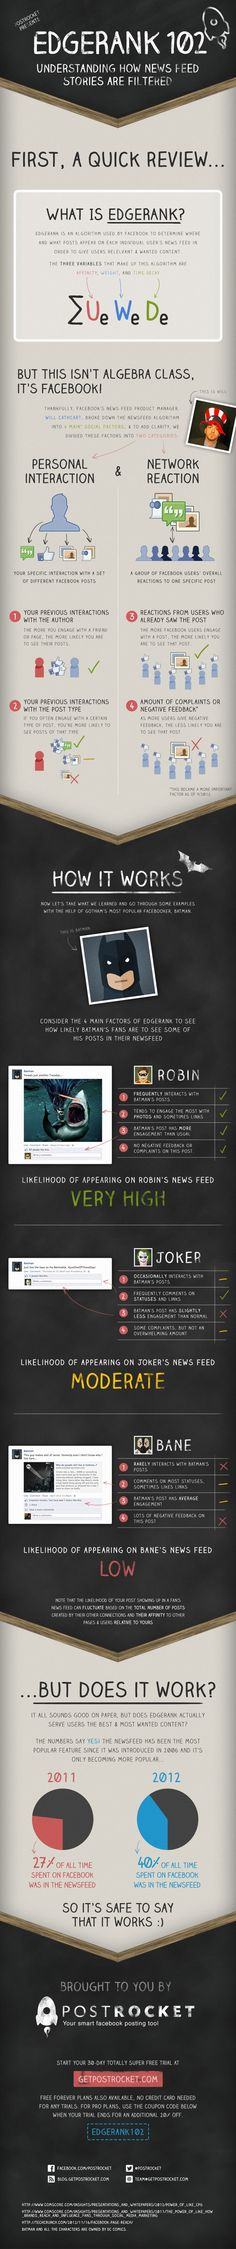 Edgerank - Understanding how news feed stories are filtered | #infographic